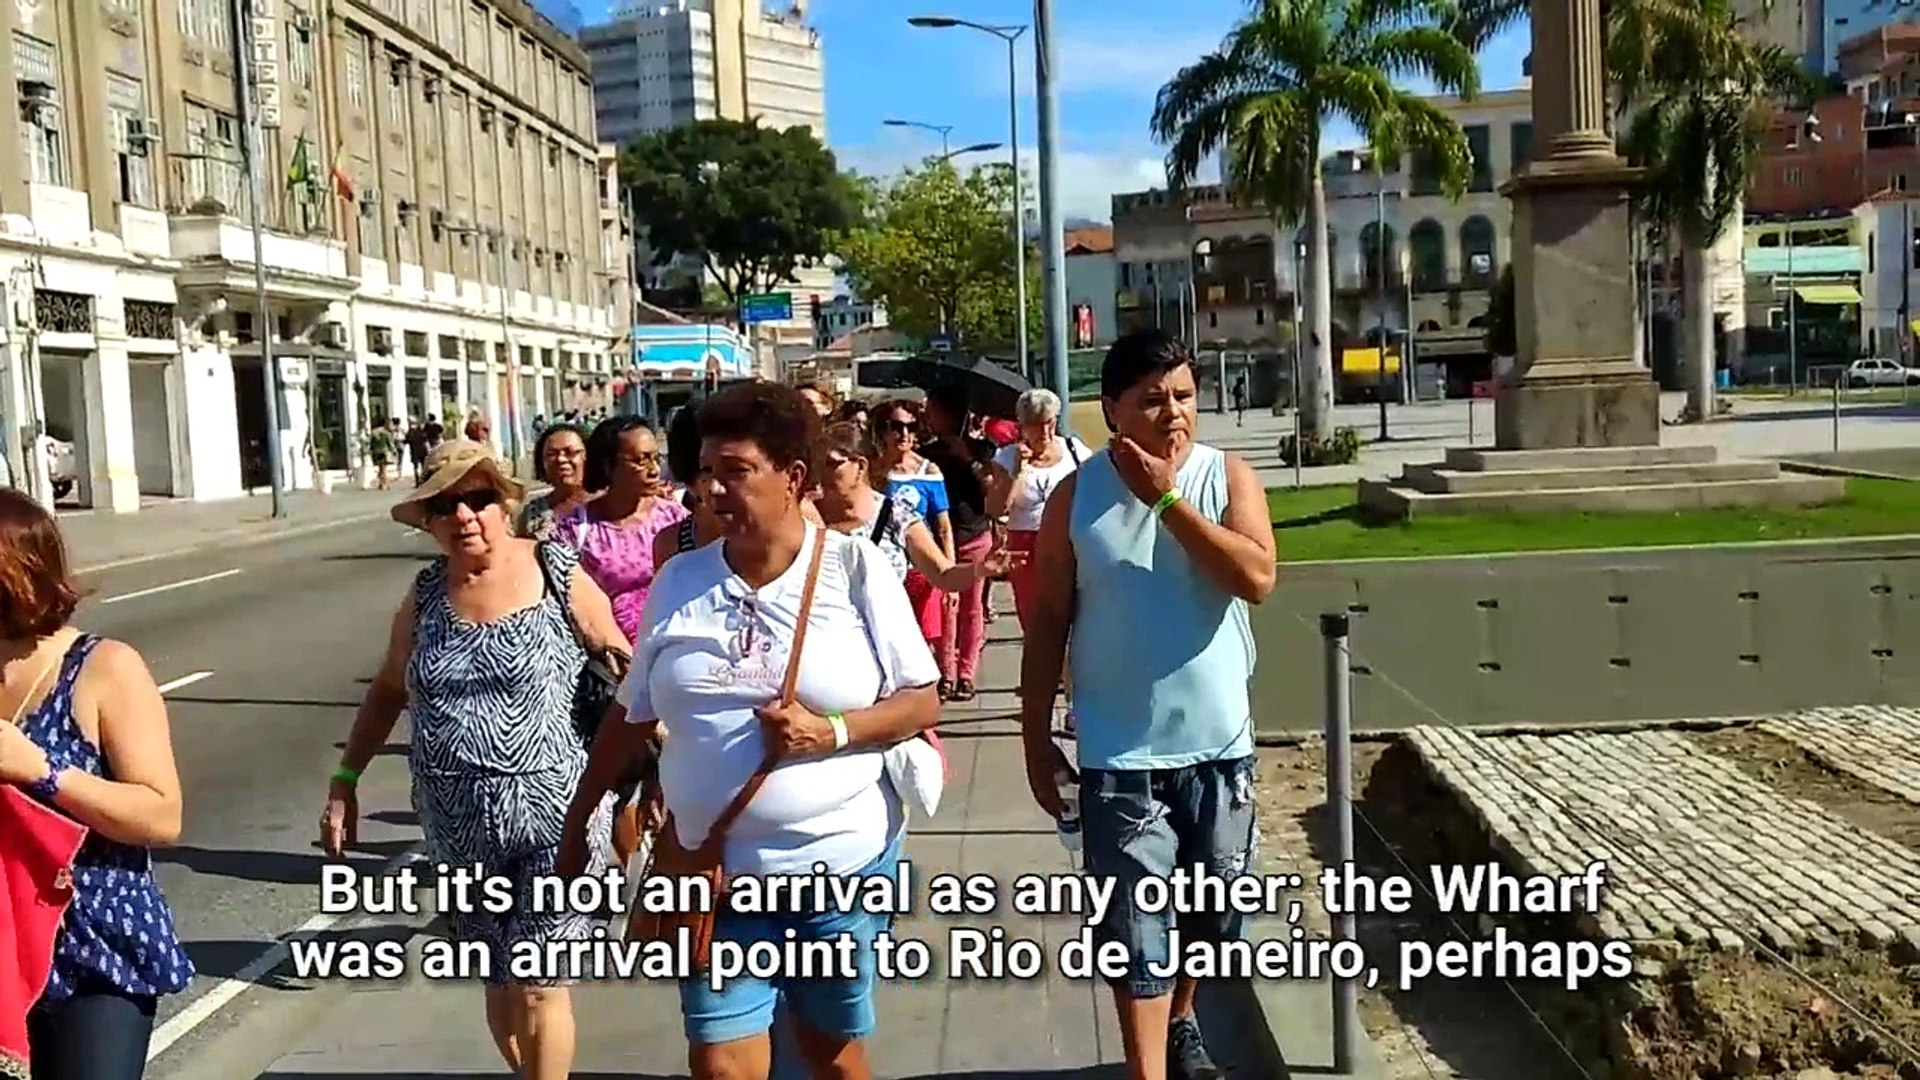 New UNESCO World Heritage Site, Valongo Wharf marks the presence of the African heritage in Brazil